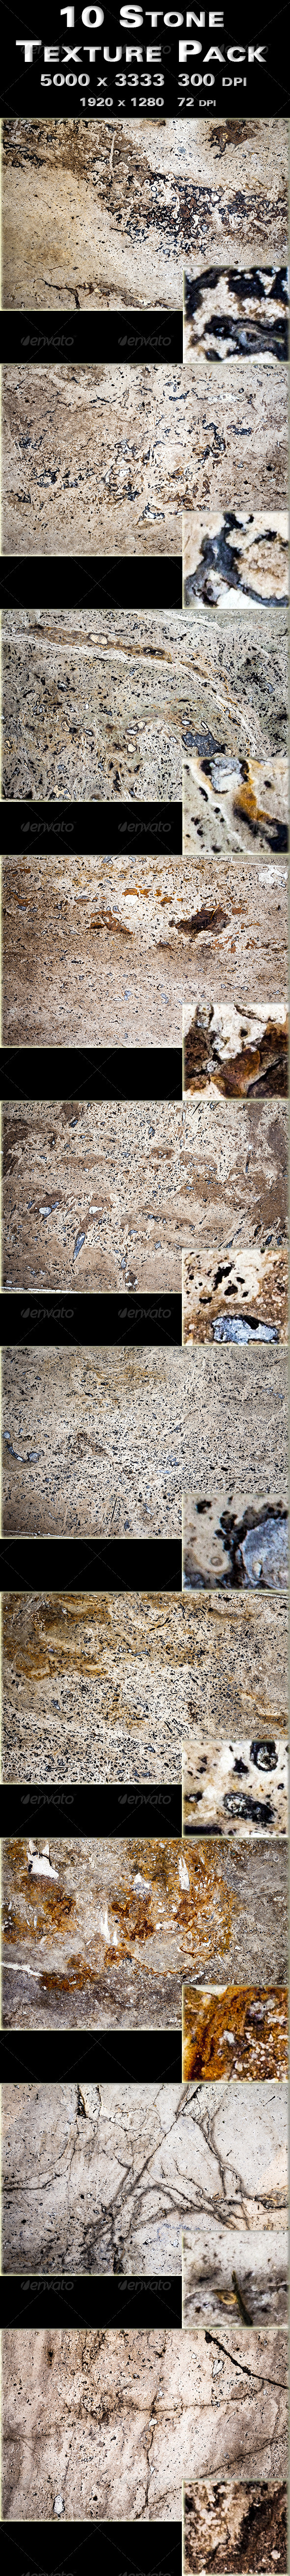 GraphicRiver 10 Stone Texture Pack 3397107